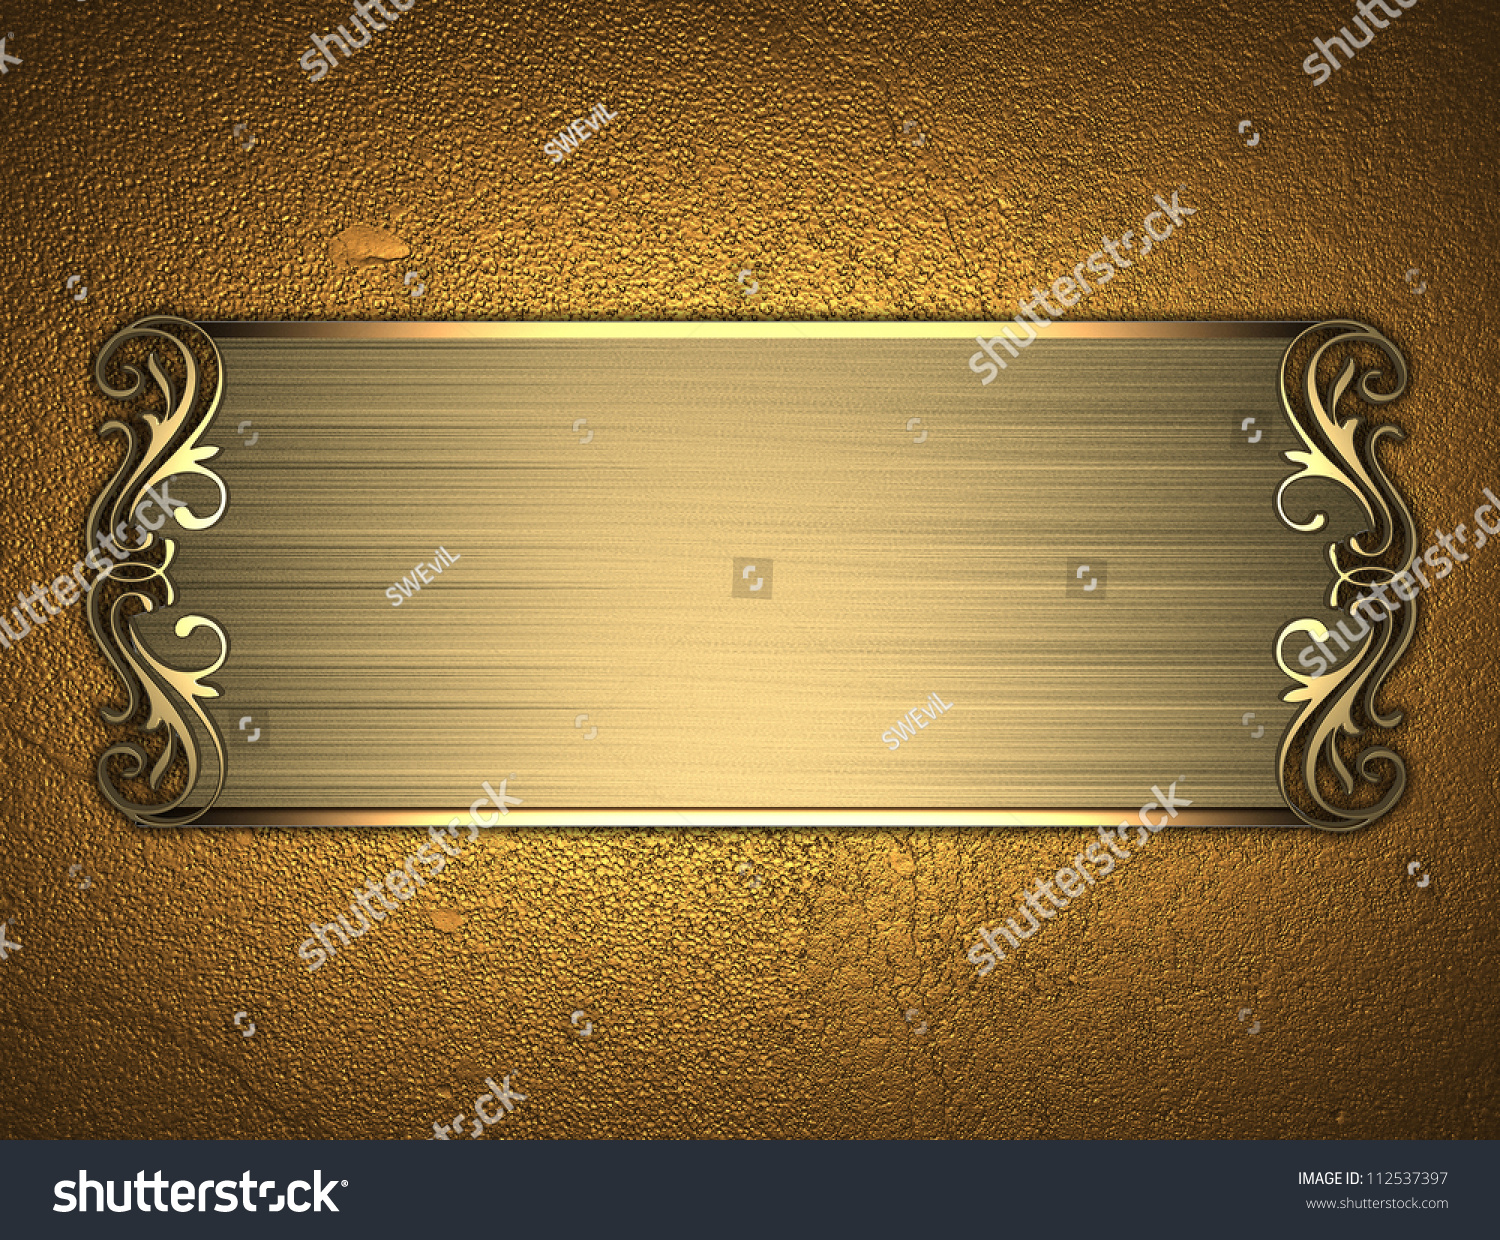 Template inscription gold background gold nameplate stock for Nameplate template free